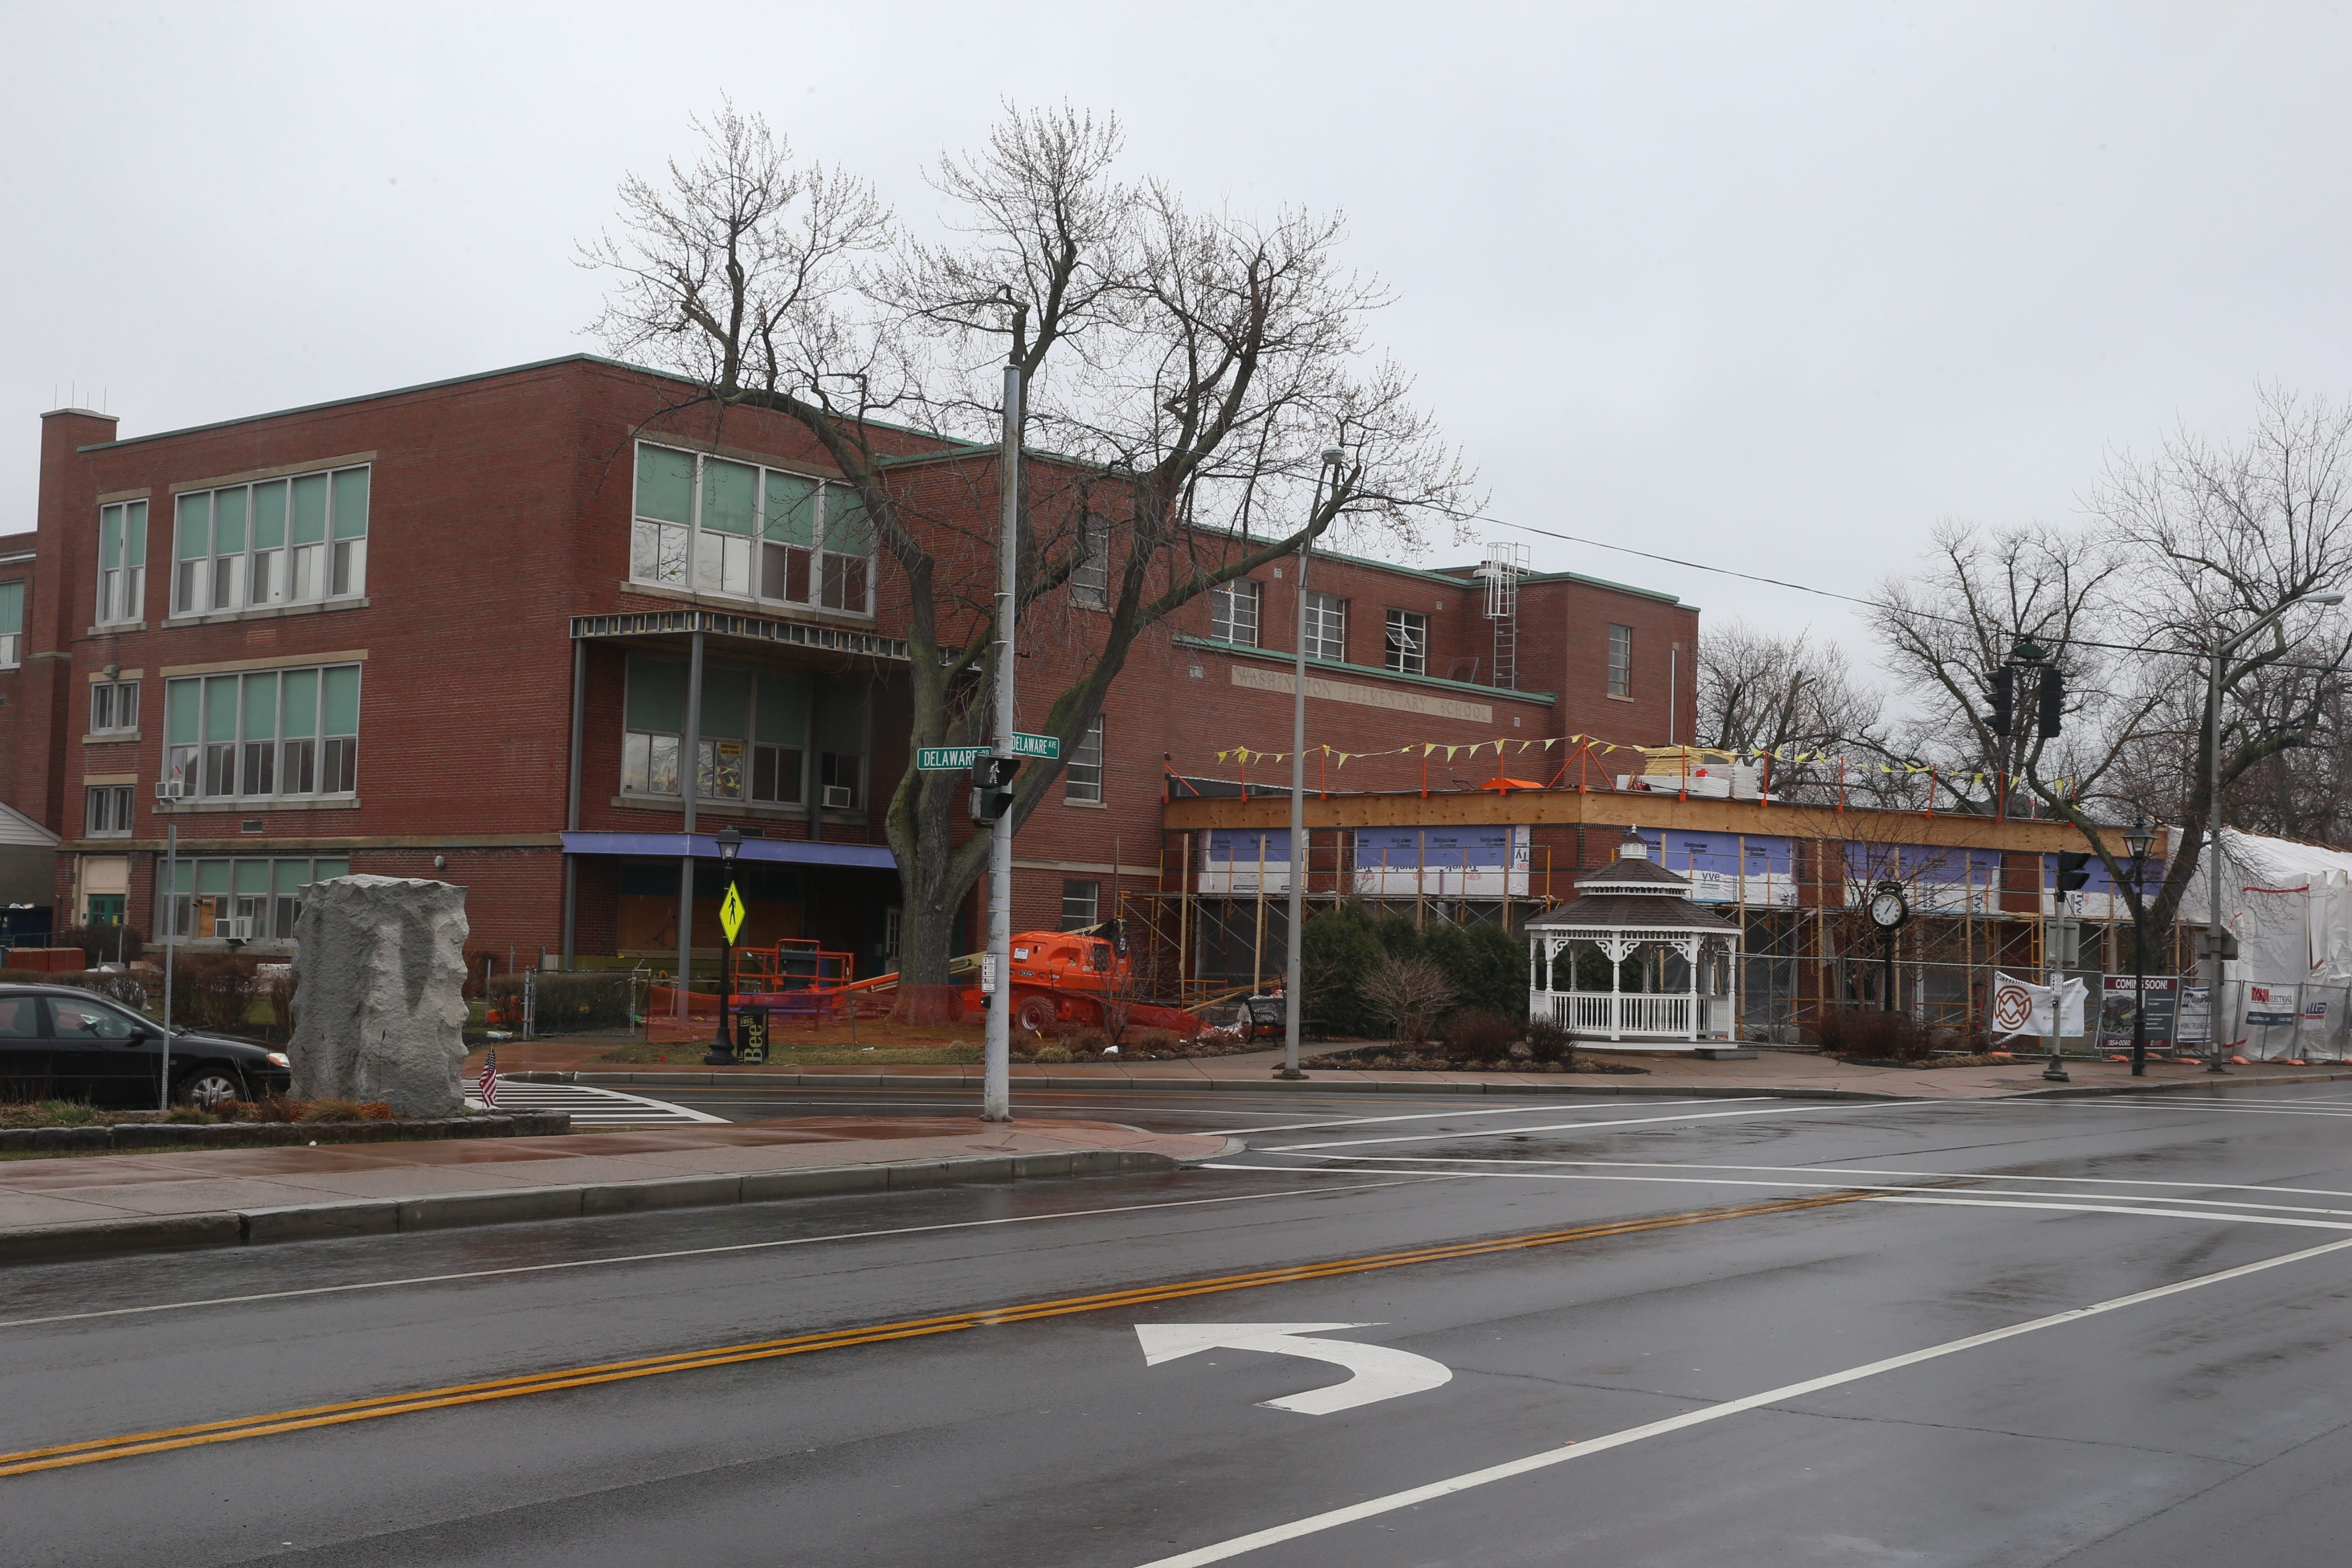 The former Washington School in Kenmore is being converted to a mixed-use building, including luxury apartments, Agave Mexican restaurant and a just-announced SPoT Coffee shop.